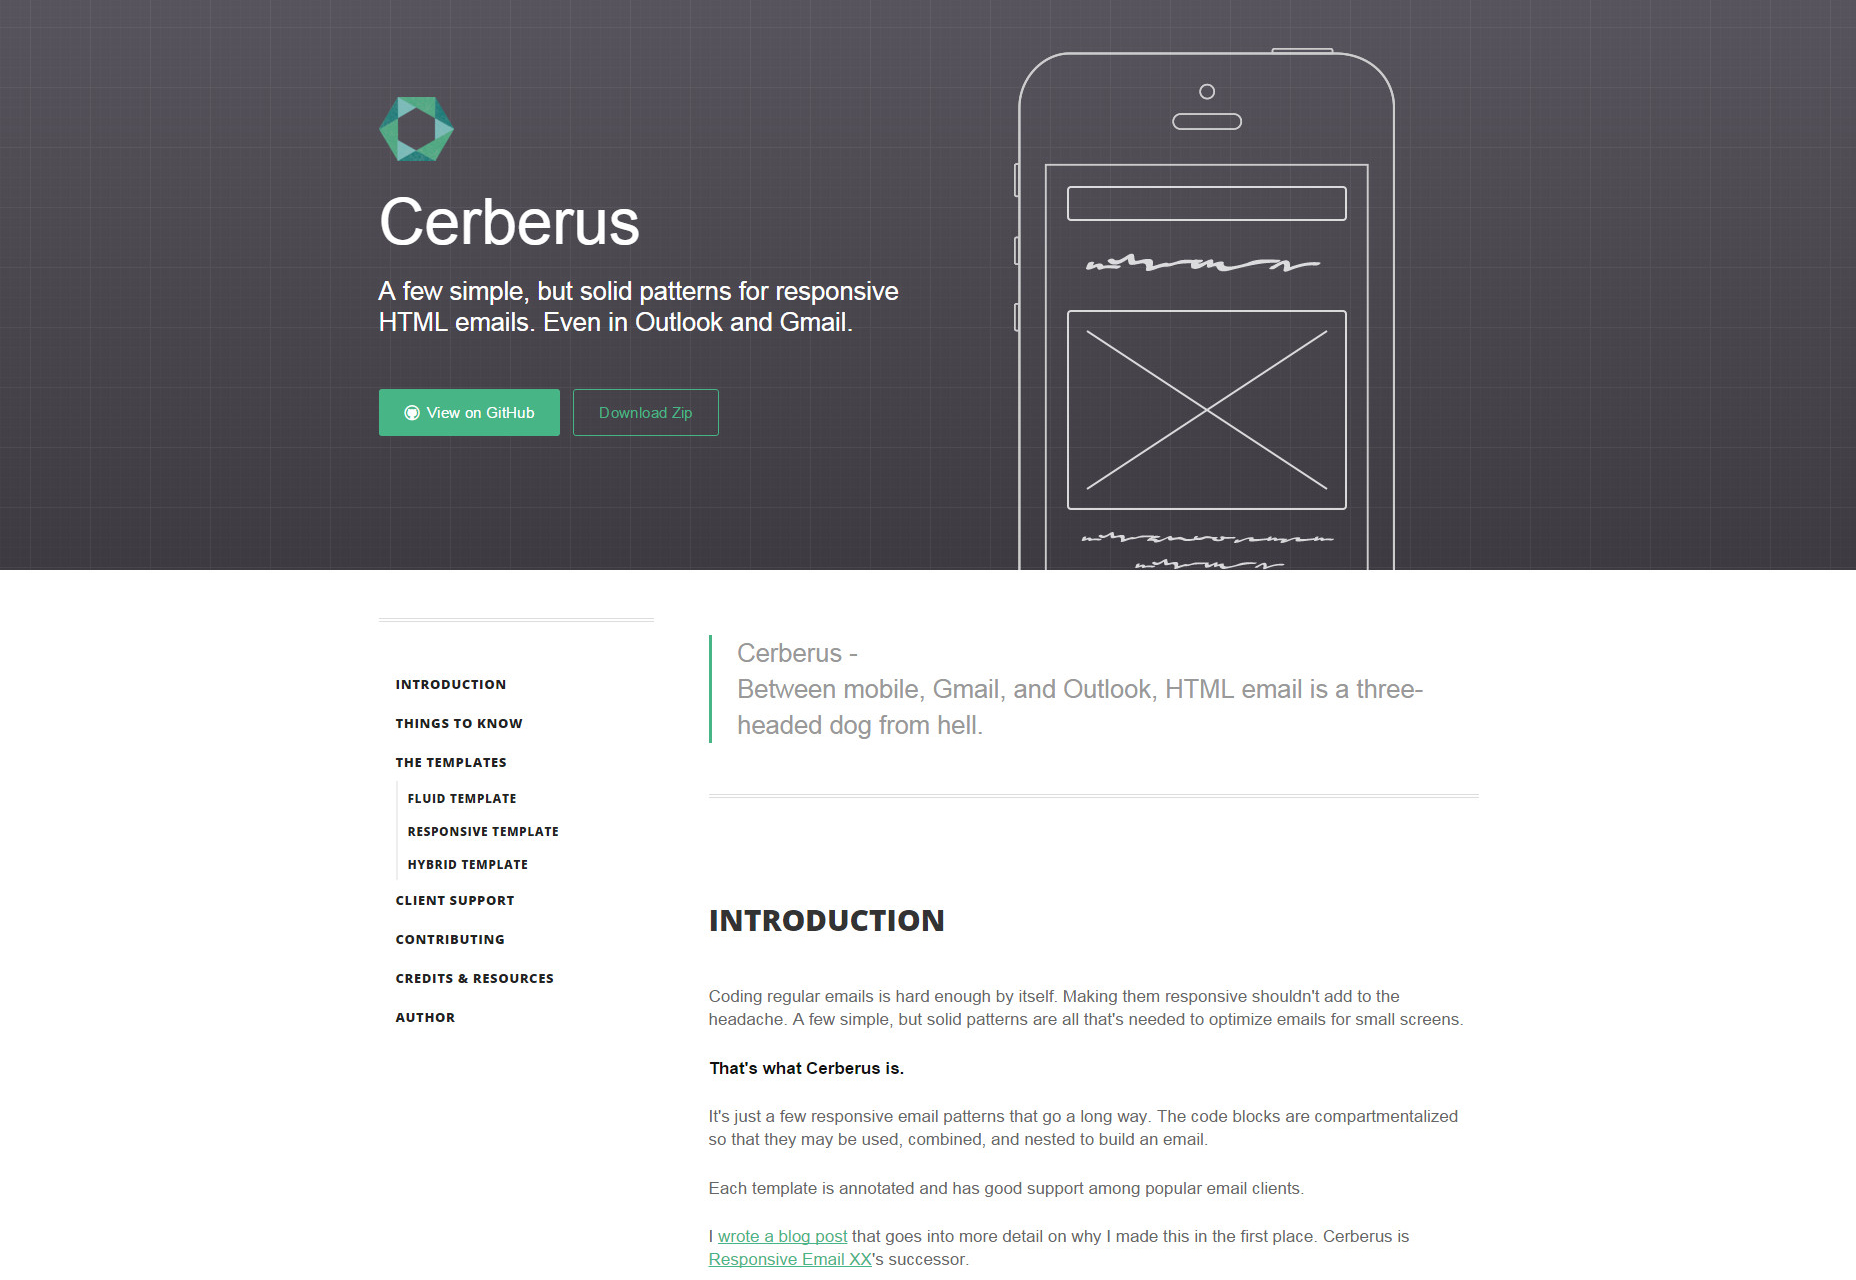 Cerberus: Patterns for Responsive HTML Email Templates